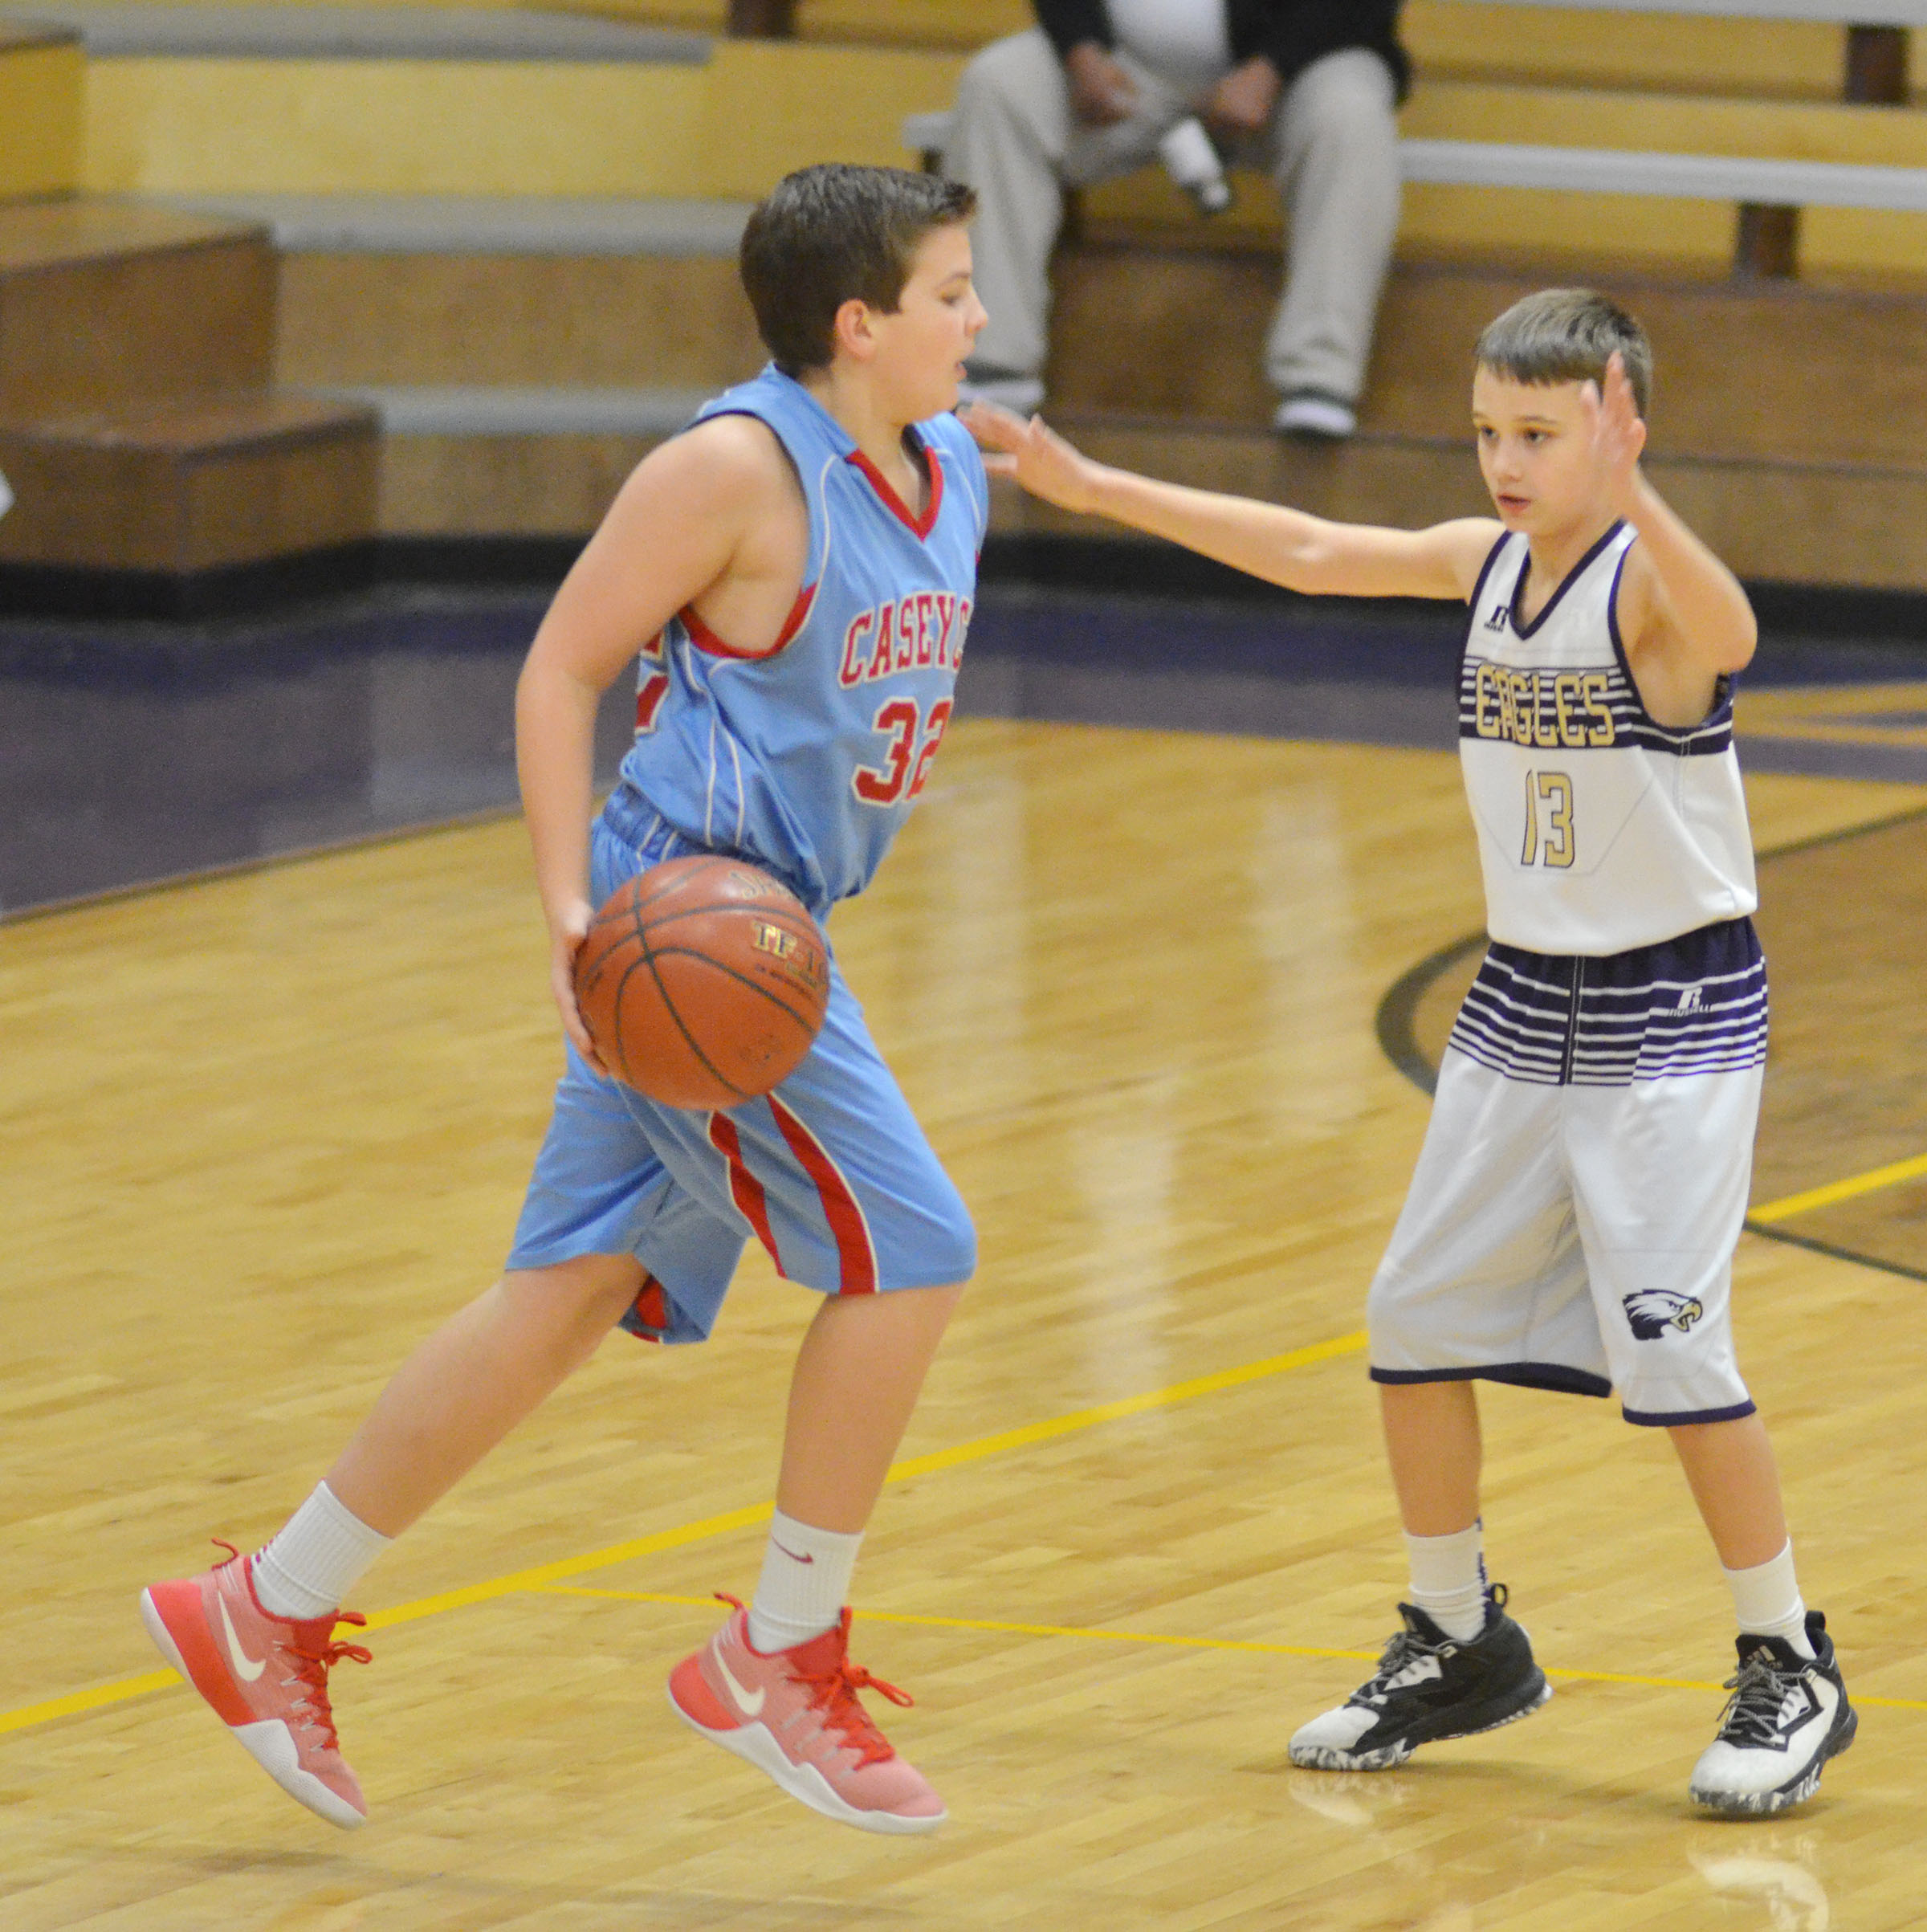 CMS sixth-grader Camren Vicari plays defense.